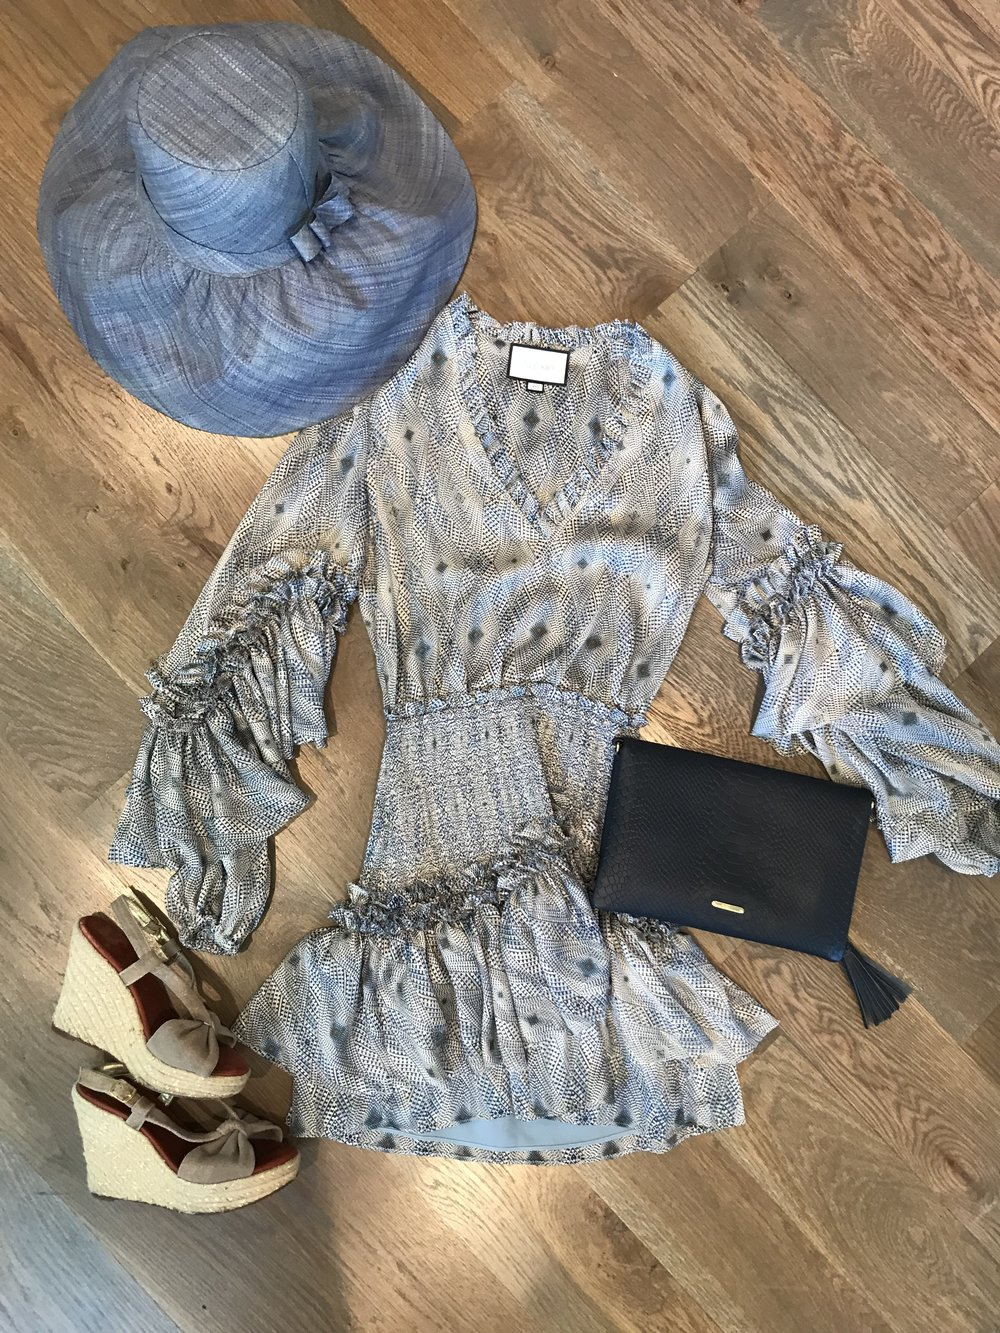 Dress:  Alexis (available at Alys Shoppe)    Wedges:  Matt Bernson                                              Handbag:  Gigi NYC       Hat:  Dillards